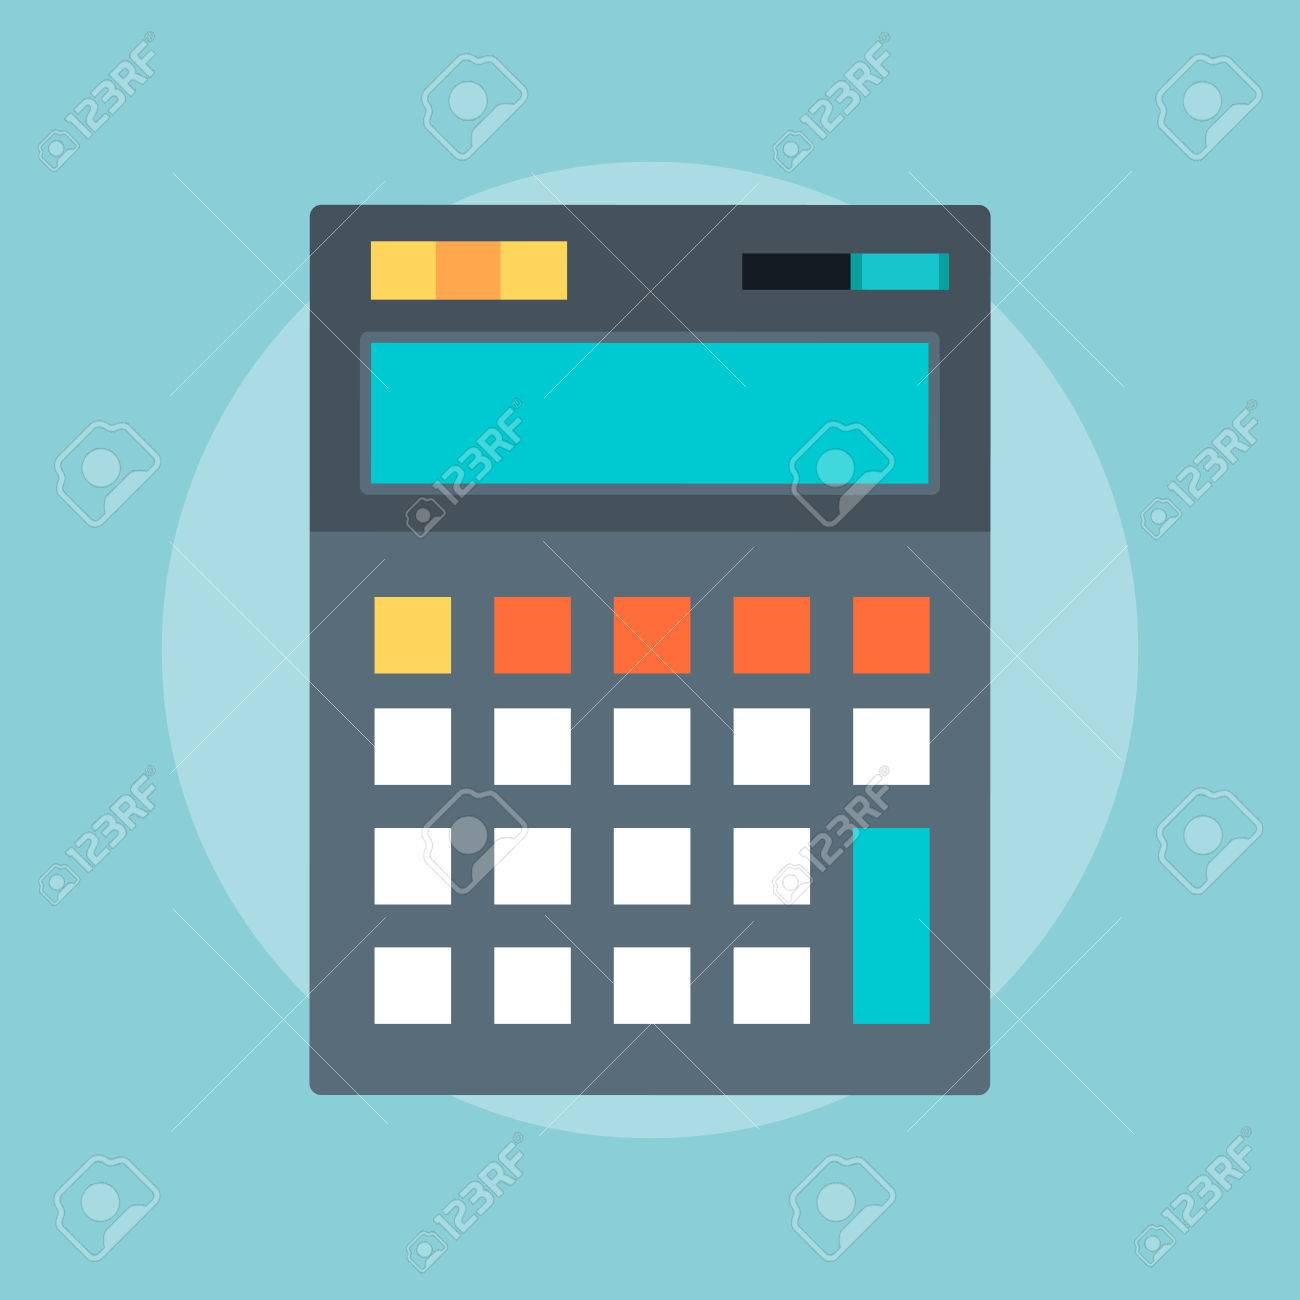 Calculator flat style, colorful, vector icon for info graphics, websites, mobile and print media. - 41709351